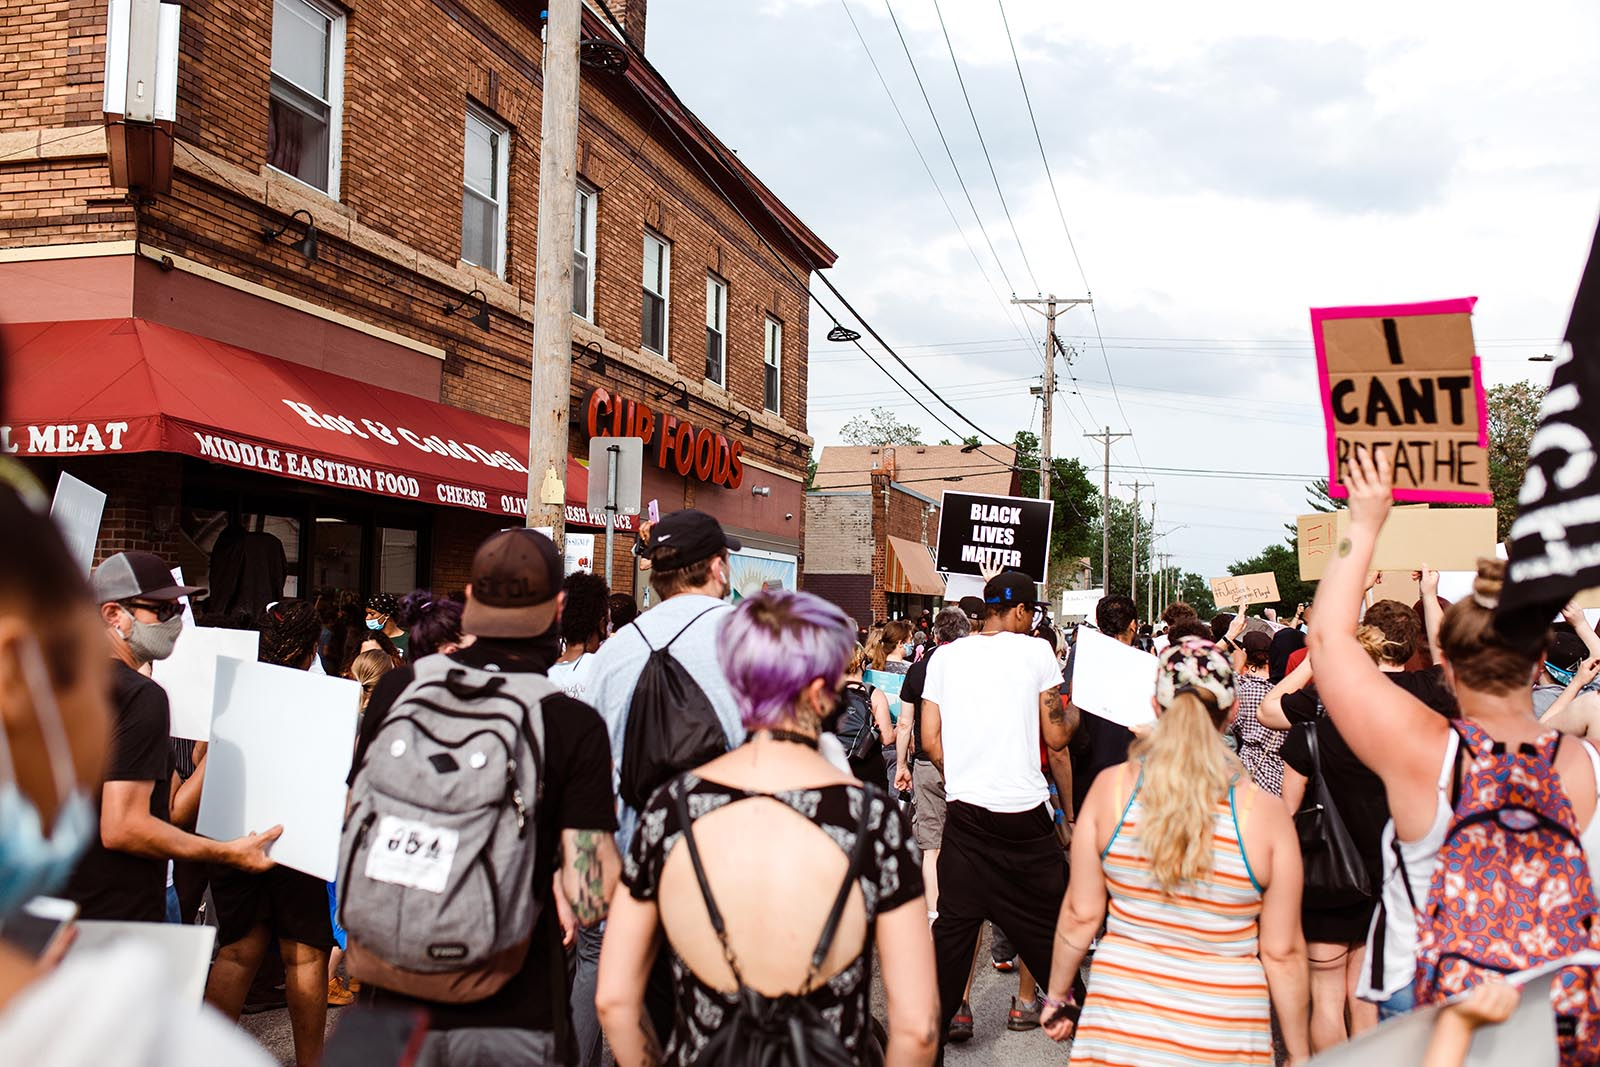 Photo of George Floyd protests in Minneapolis, MN